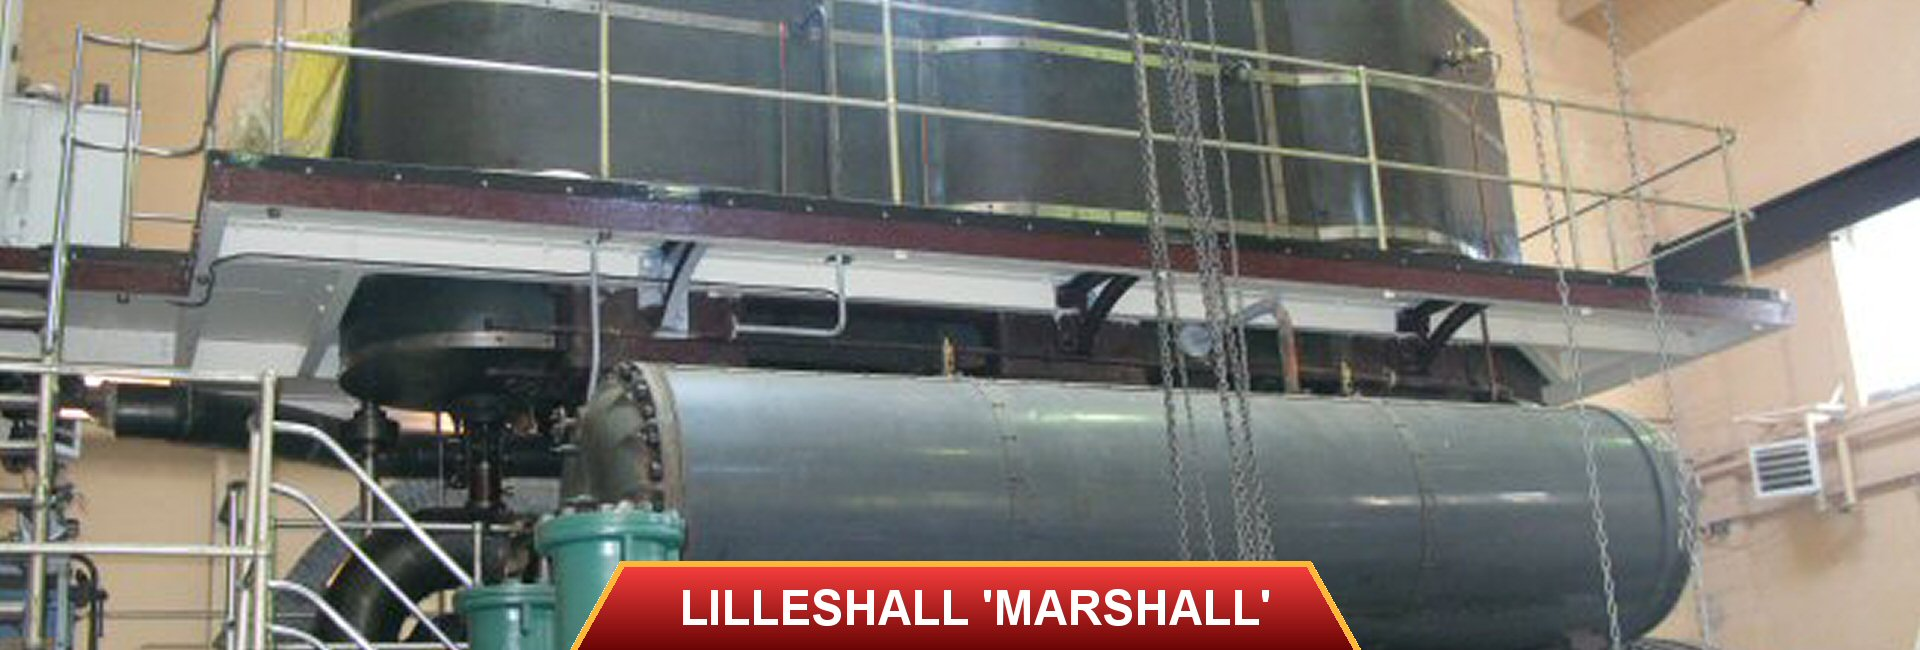 Lilleshall Marshall